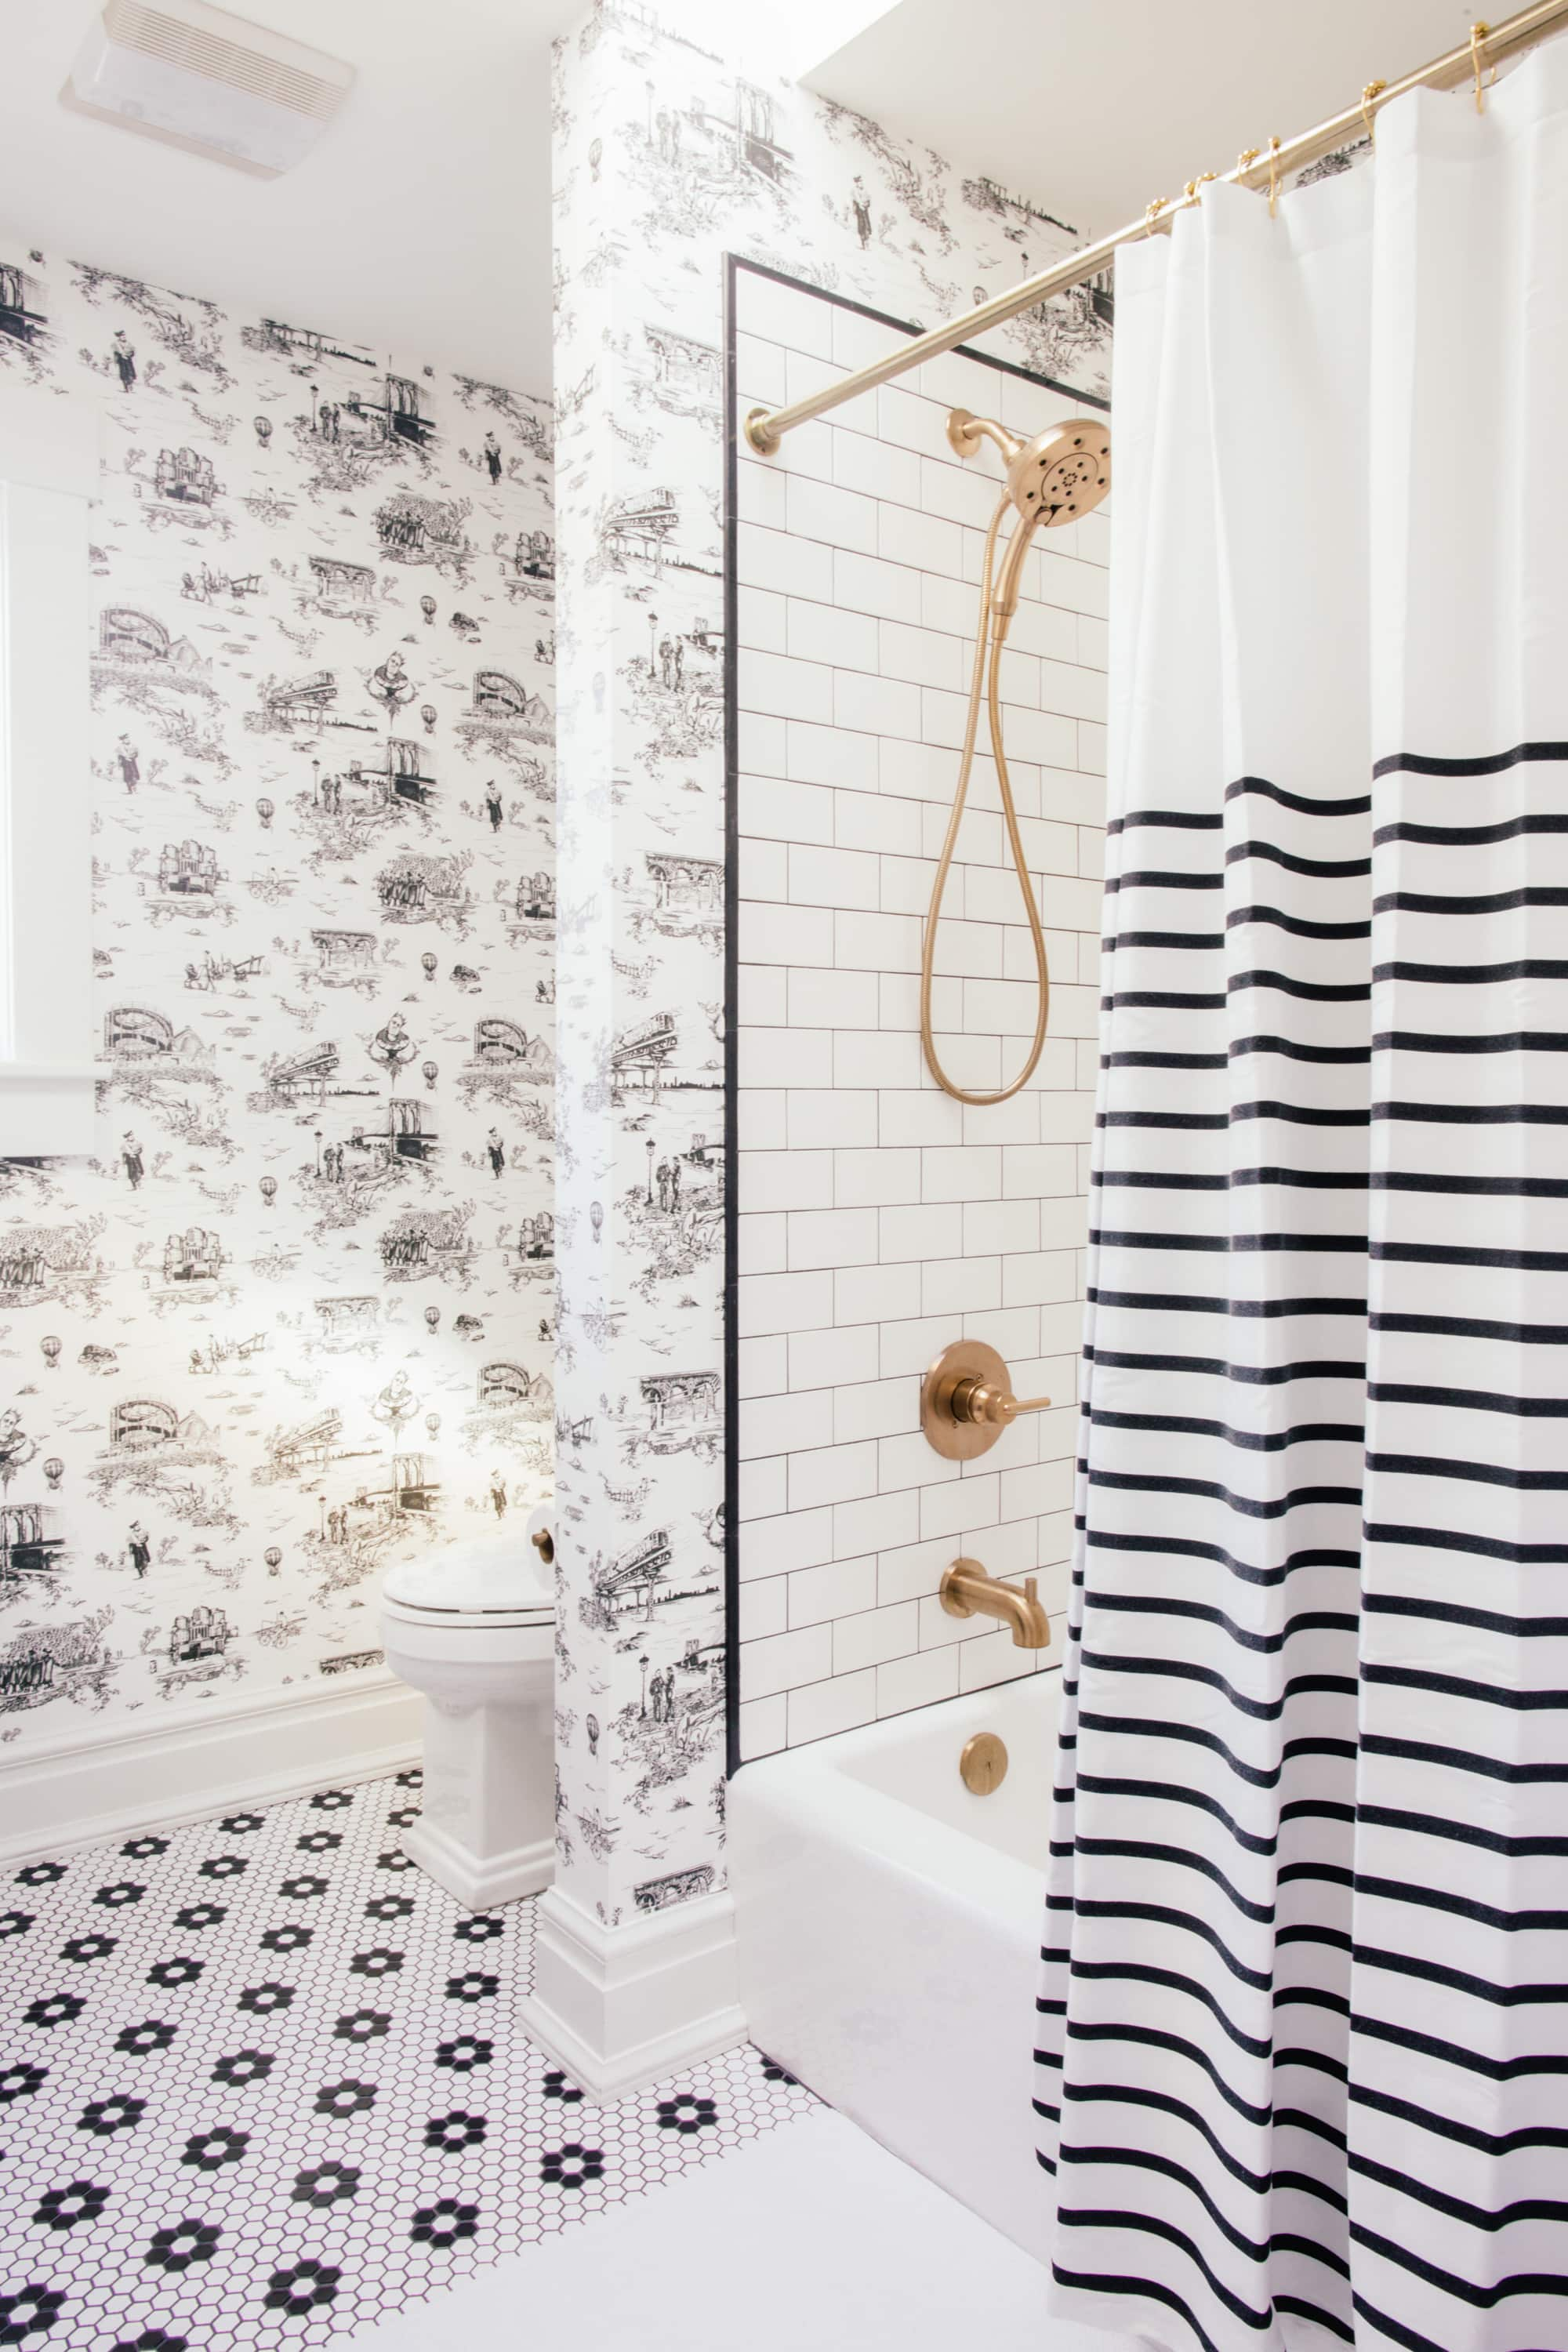 Shower Tile Ideas.Bathroom Tile Ideas Floor Shower Wall Designs Apartment Therapy